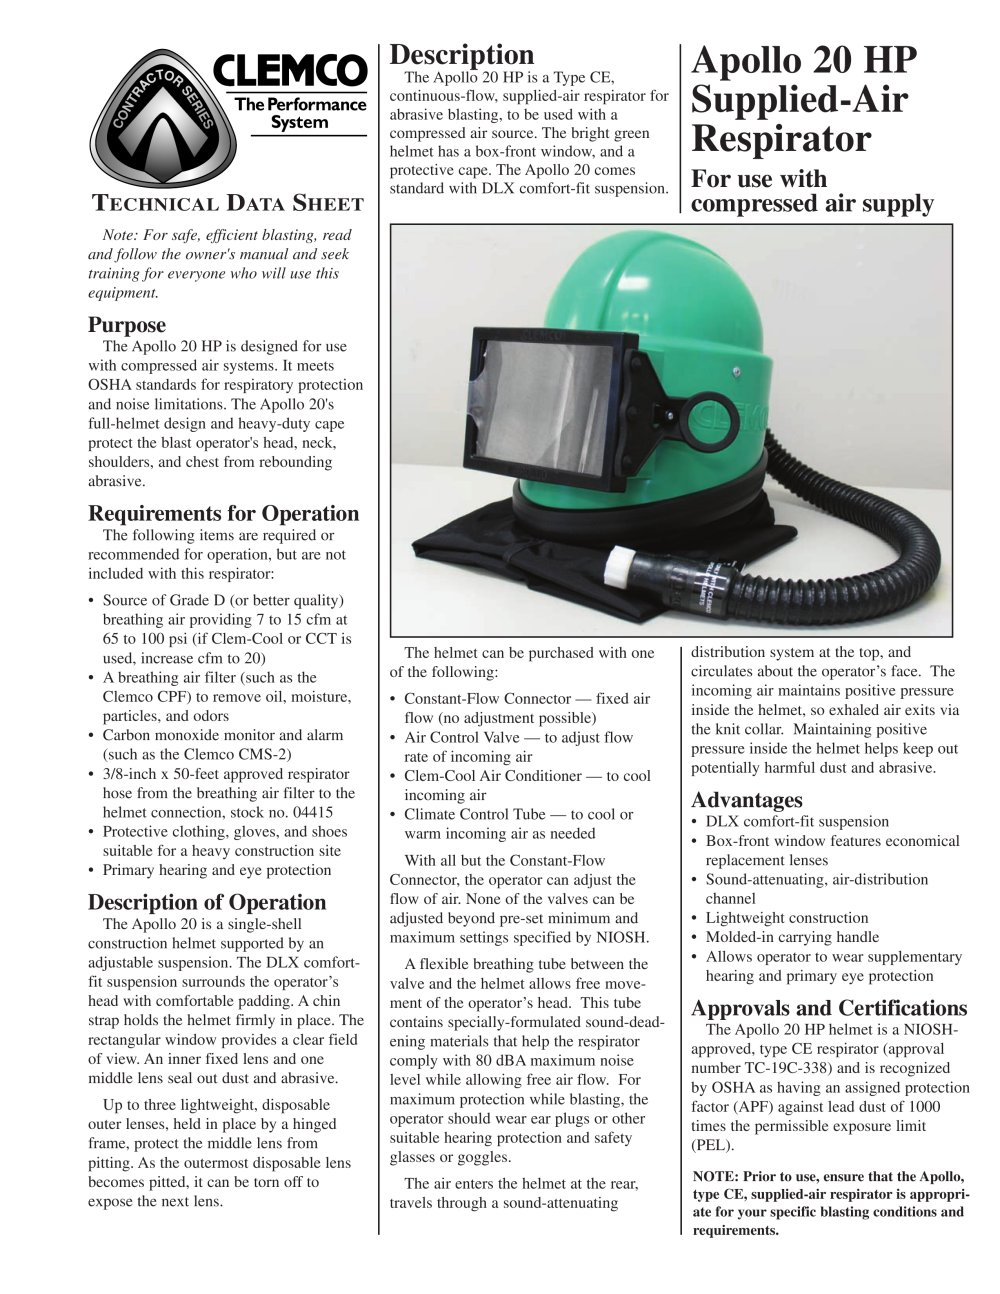 Clemco Industries Blast Cabinets Apollo 20 Hp Supplied Air Respirator Rev D Clemco Industries